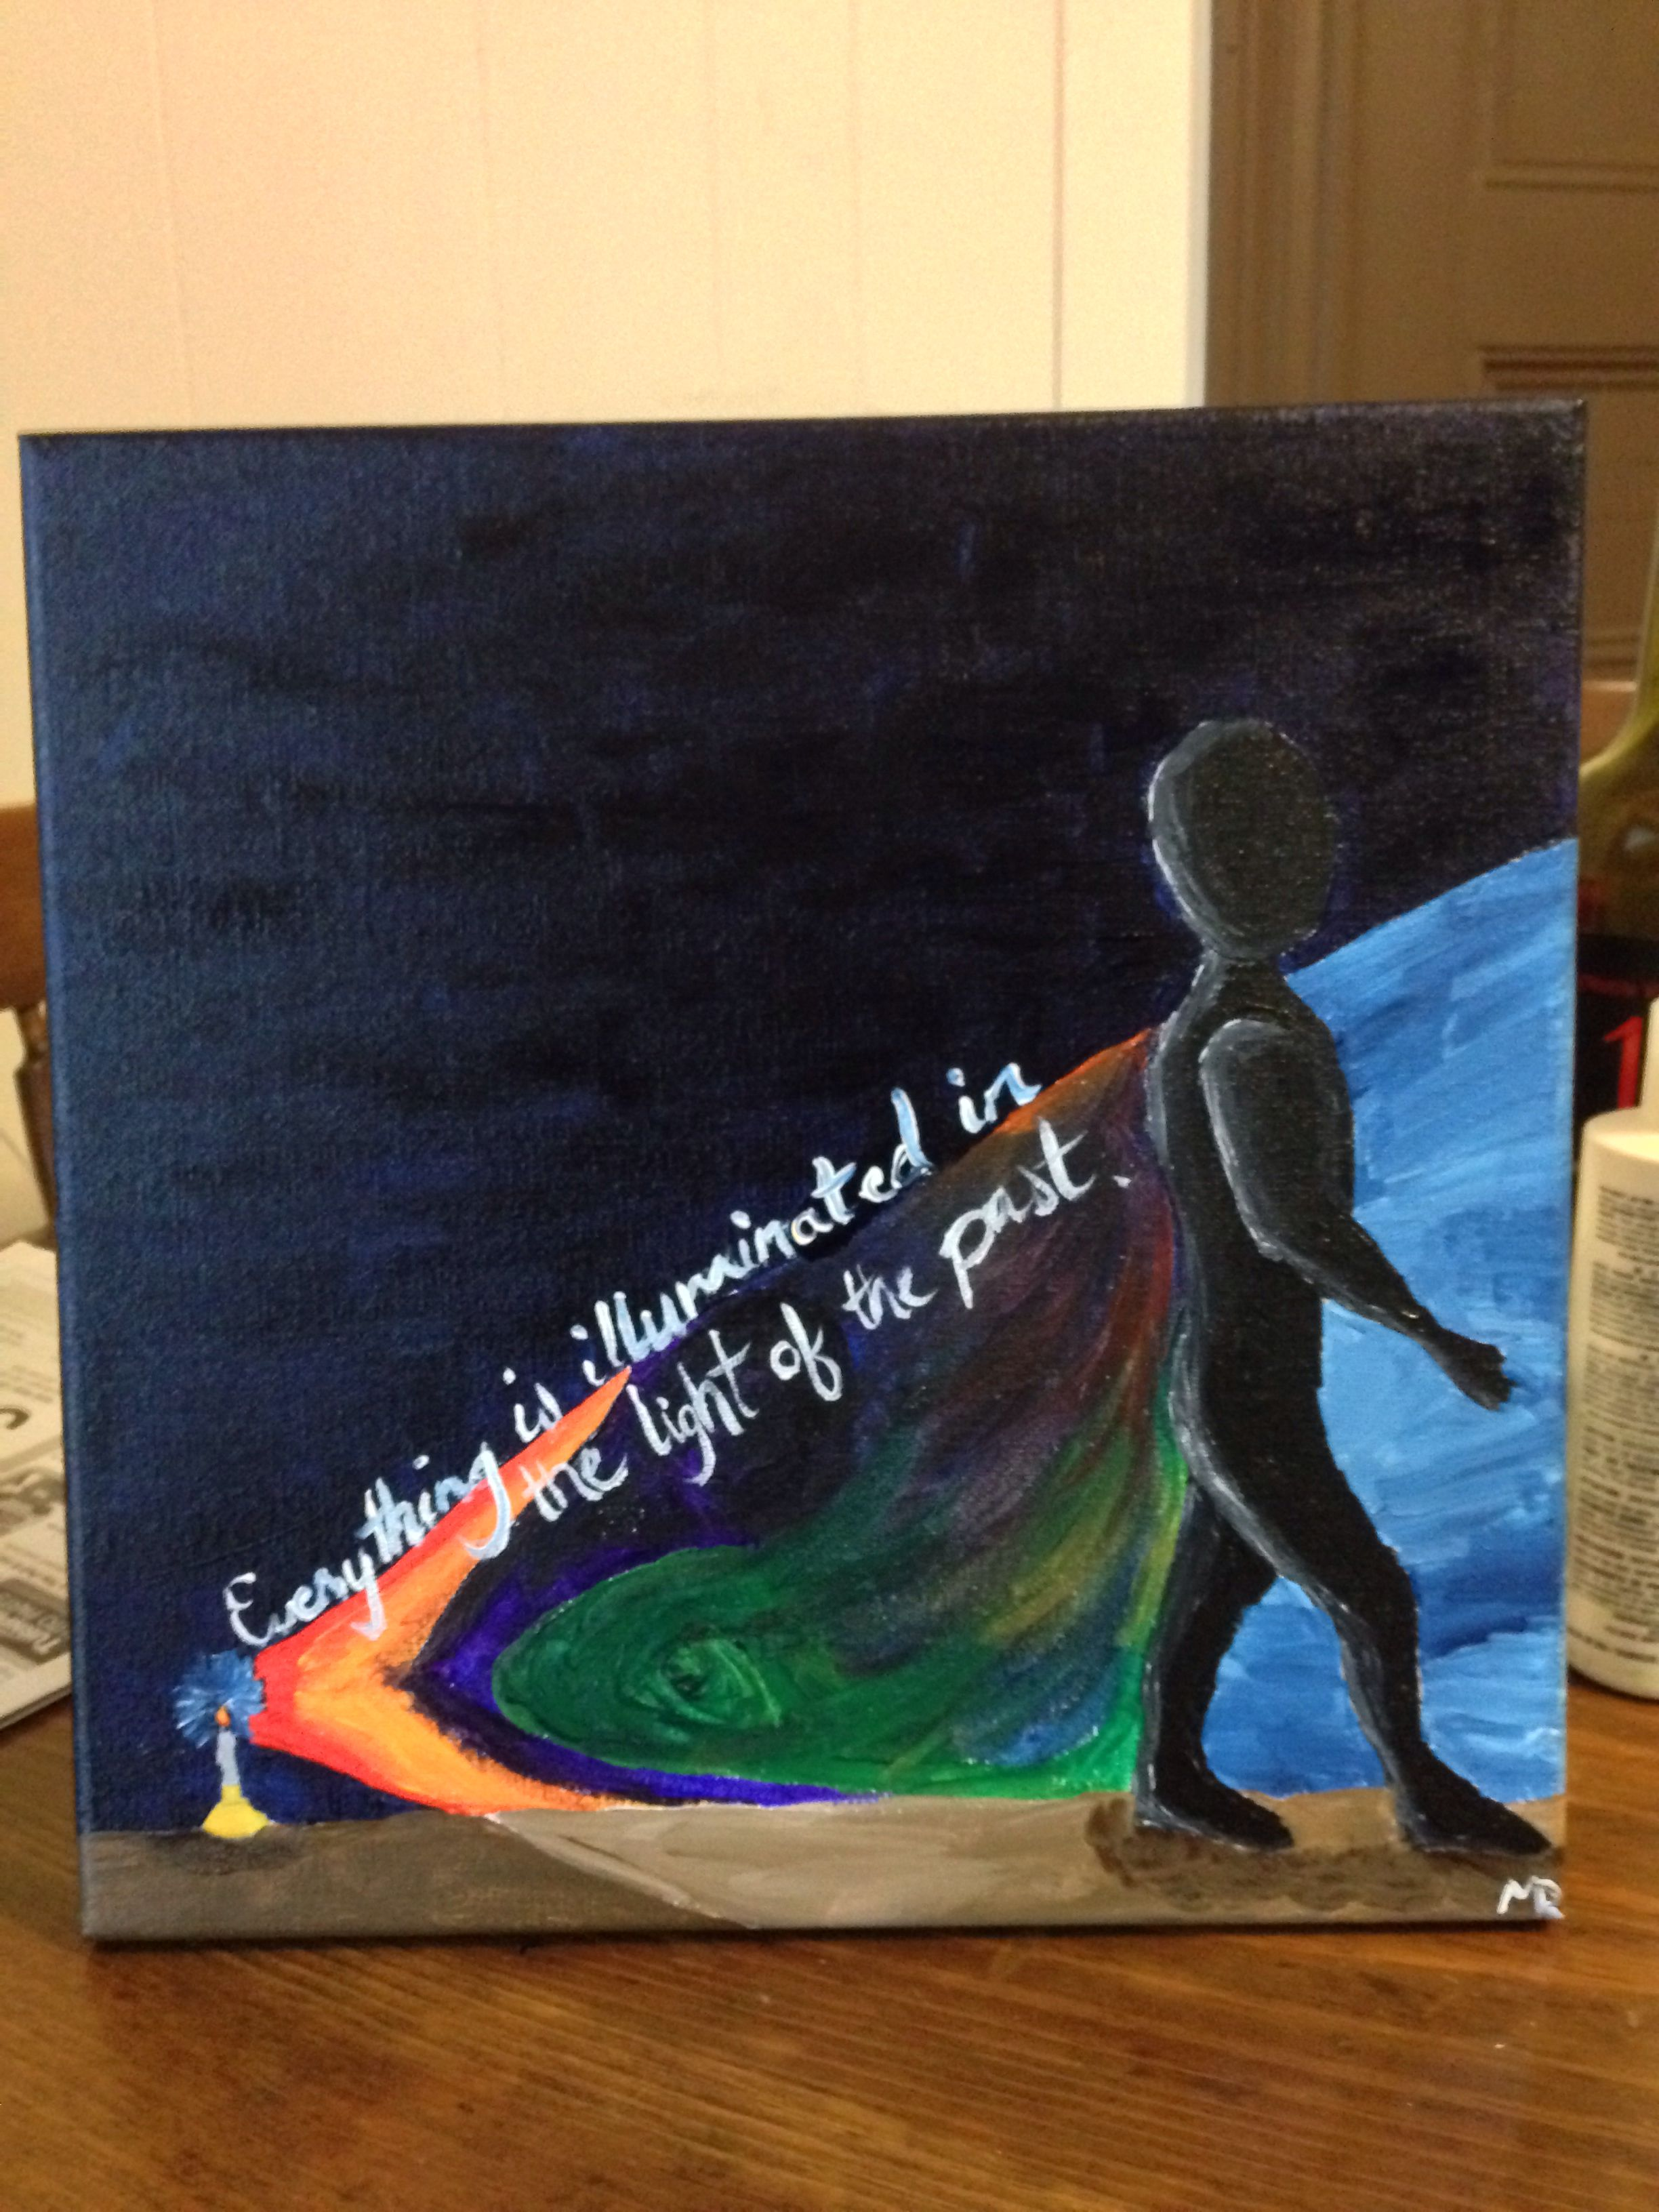 Everything is illuminated in the light of the past. My newest painting inspired by the quote.